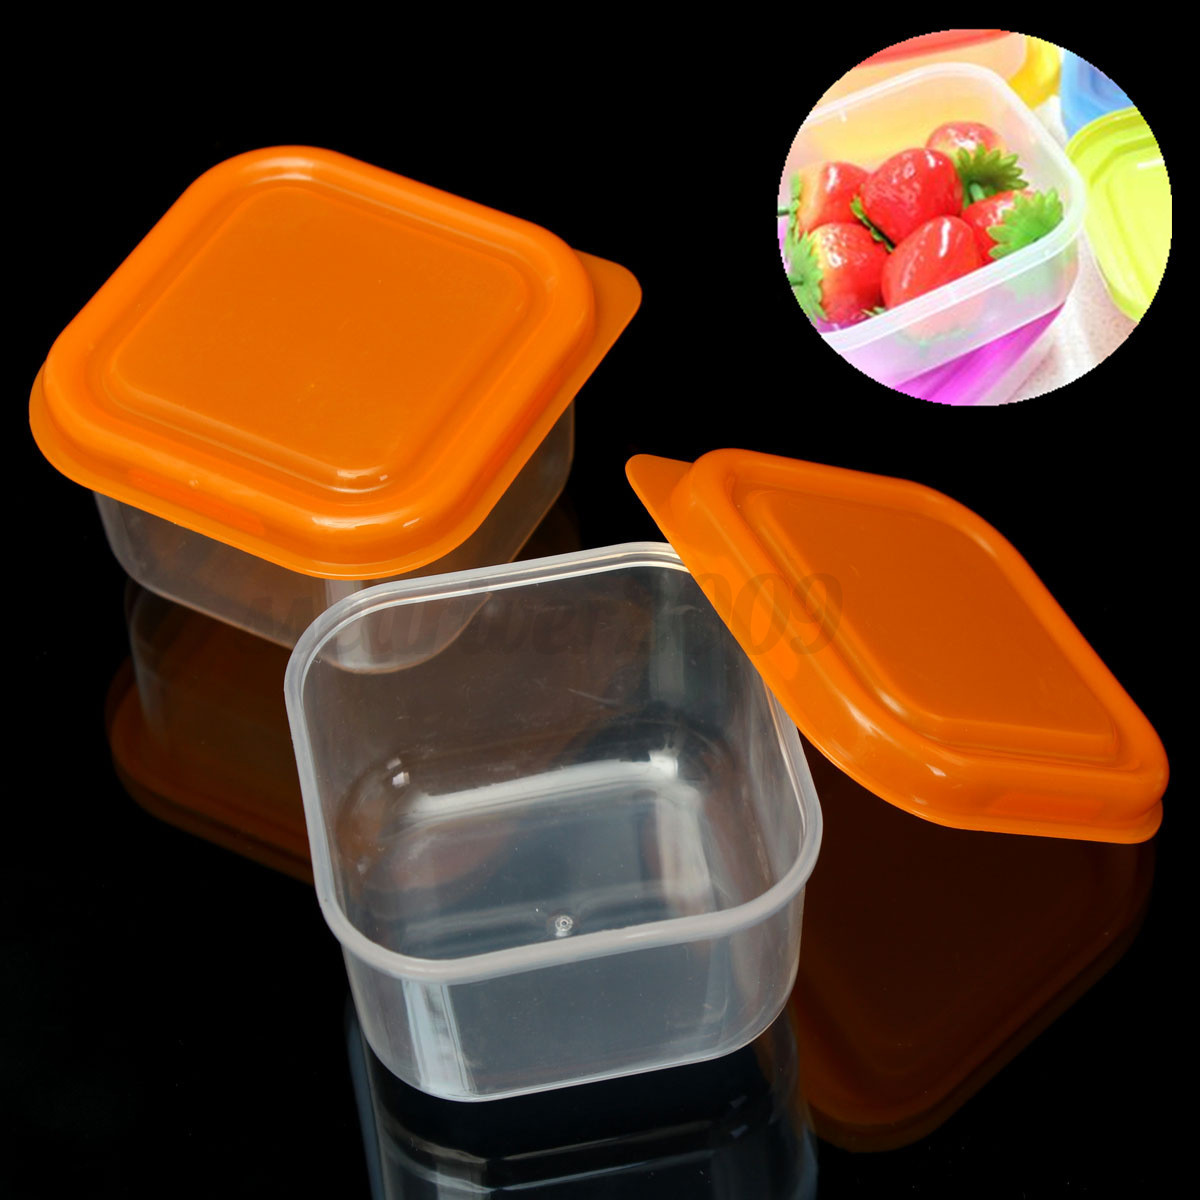 10pcs reusable plastic food sweet storage containers organizer box set with lids ebay. Black Bedroom Furniture Sets. Home Design Ideas